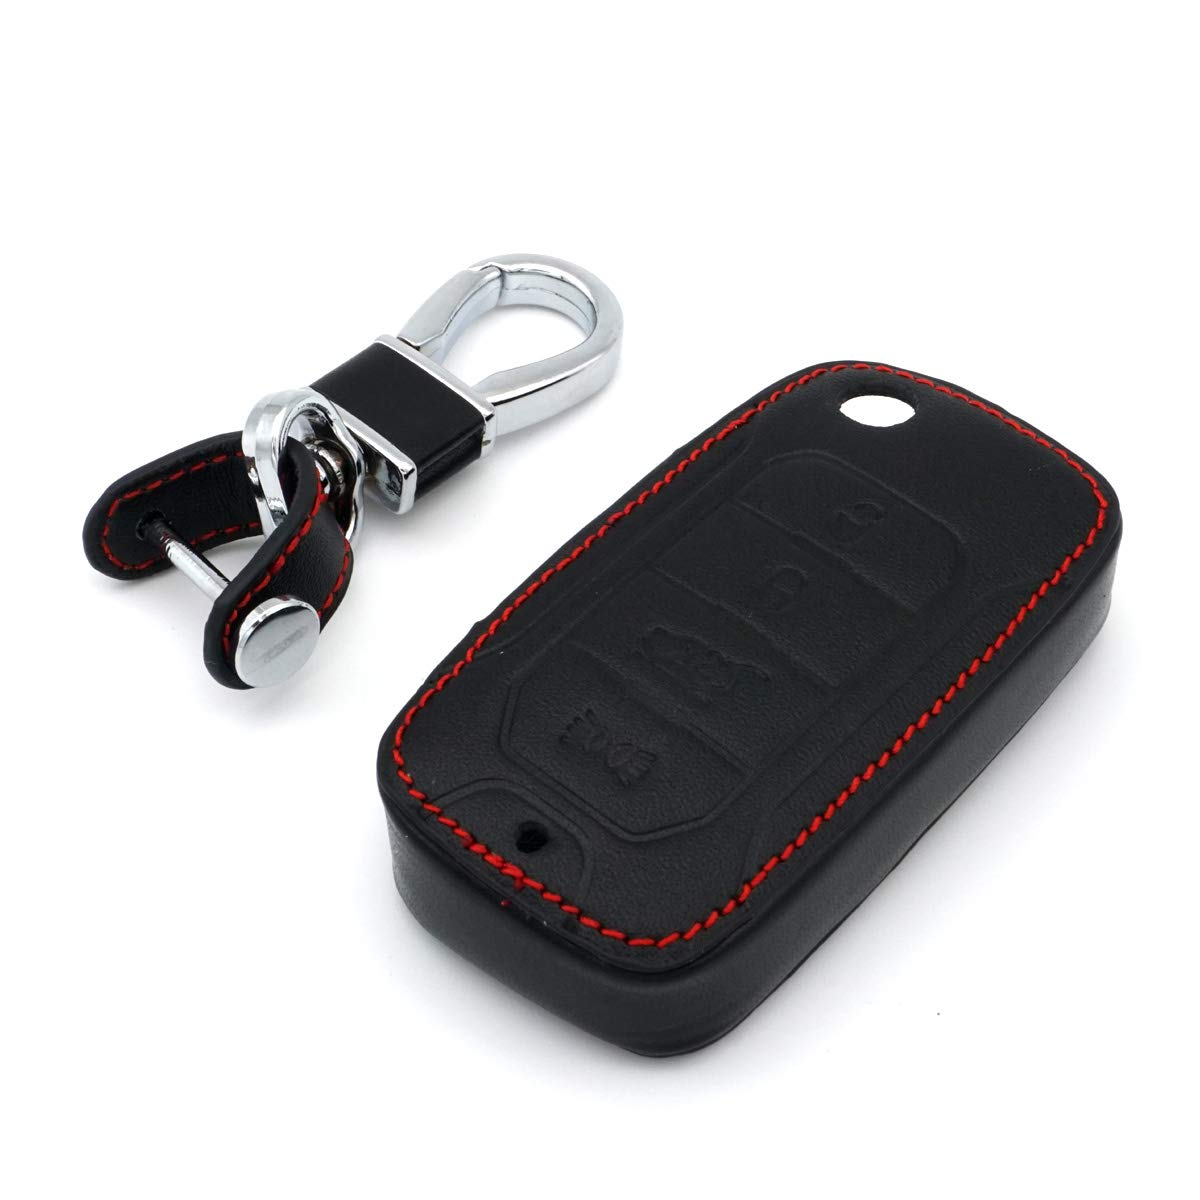 RoyalFox Black Genuine Leather 4 Buttons flip Folding Remote Key Fob case Cover Keychain for 2017 2016 2015 Jeep Renegade